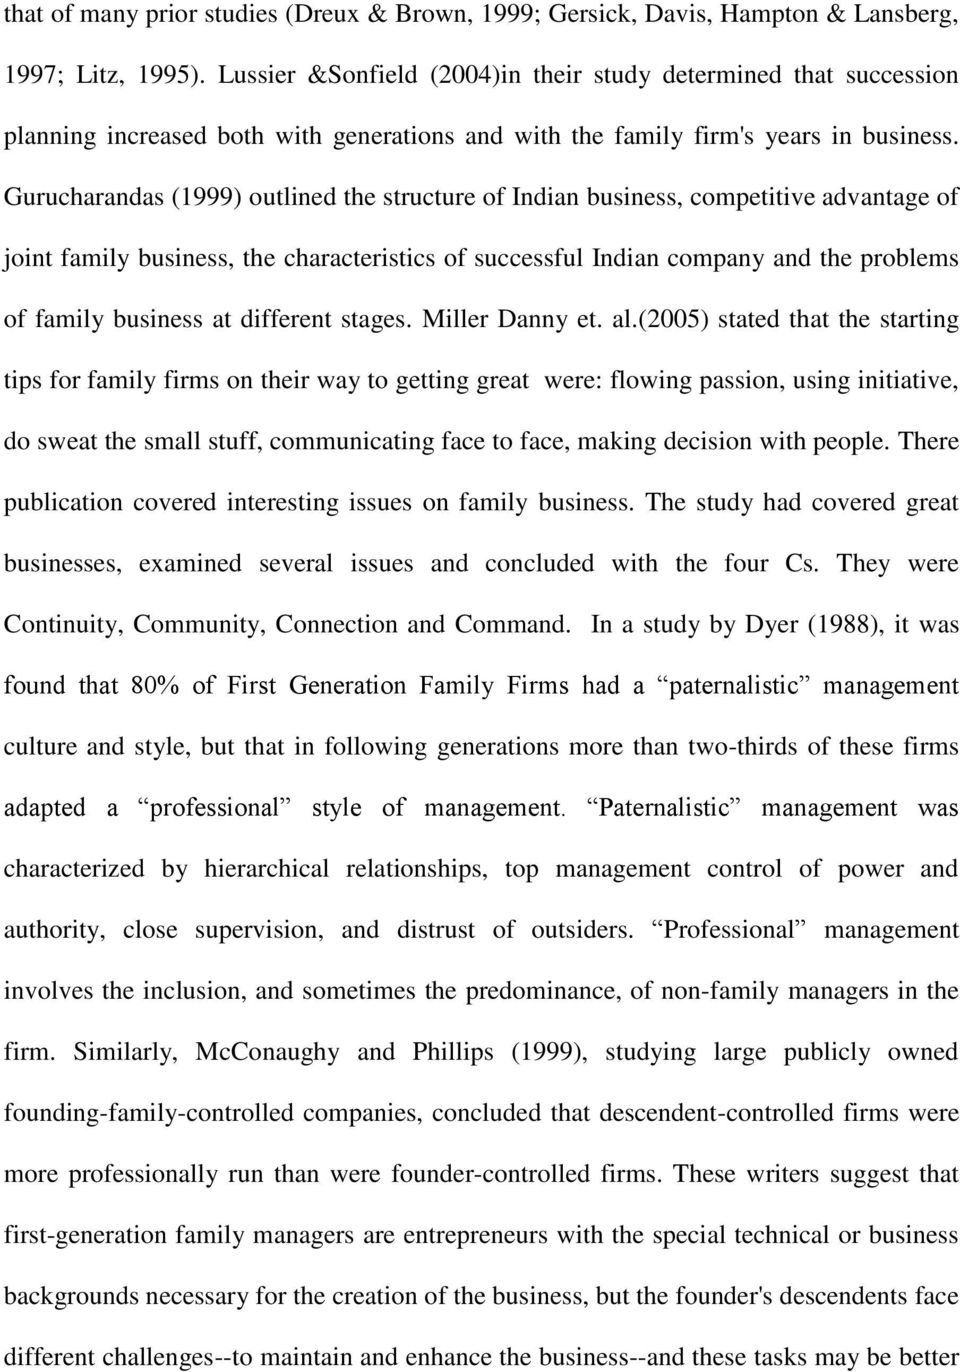 Gurucharandas (1999) outlined the structure of Indian business, competitive advantage of joint family business, the characteristics of successful Indian company and the problems of family business at